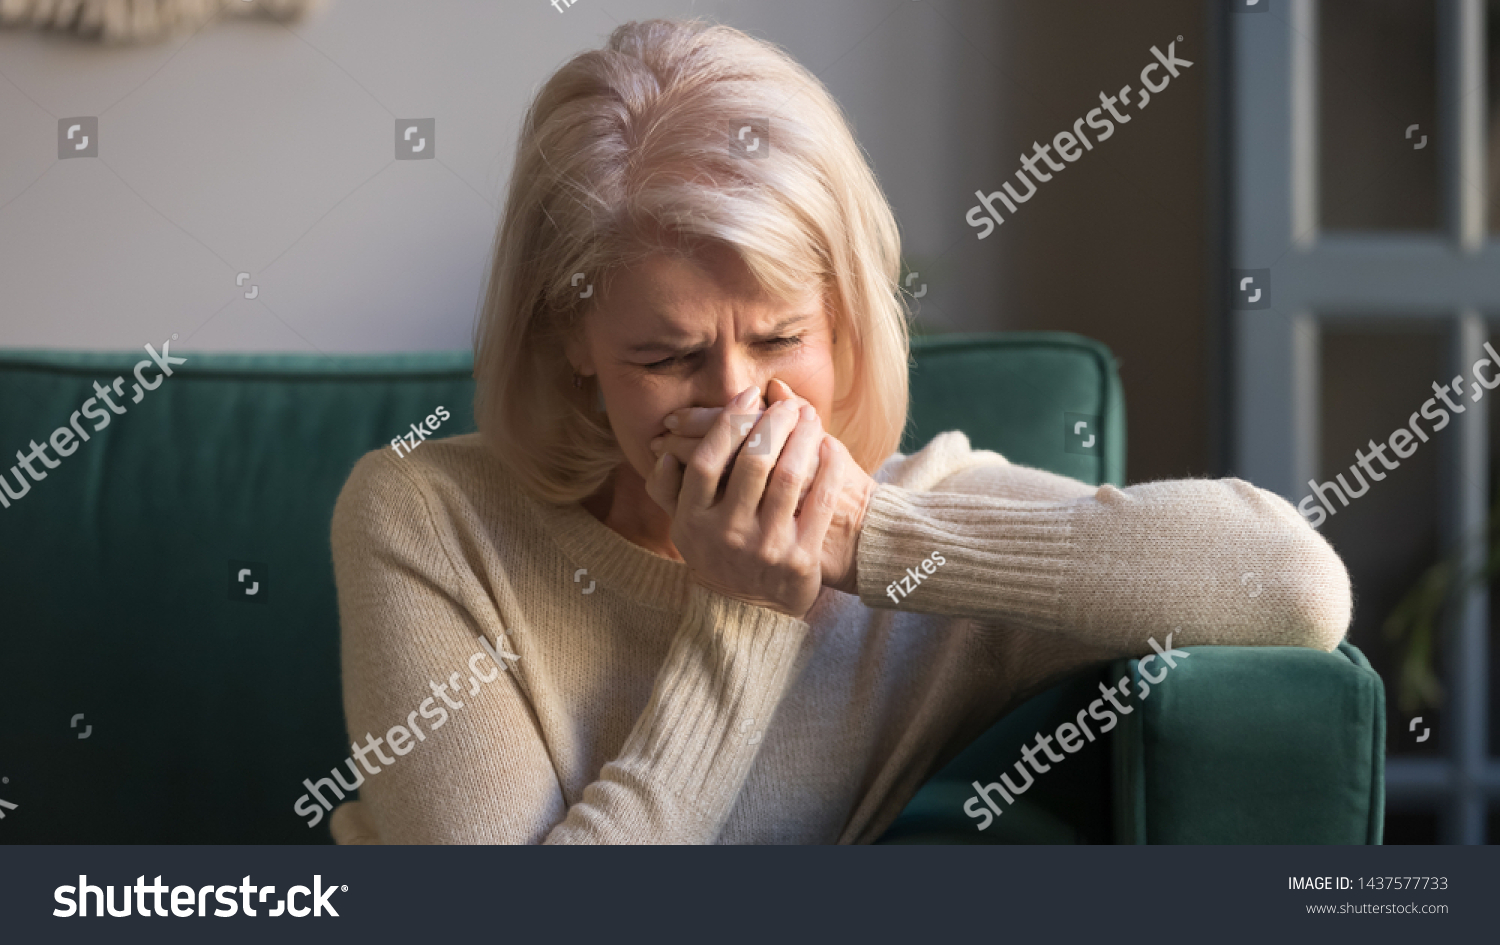 Sad stressed old middle aged woman widow mourning crying alone sit on couch at home, upset desperate senior mature elder grandma grieving weeping suffering from anxiety grief sorrow disease concept #1437577733